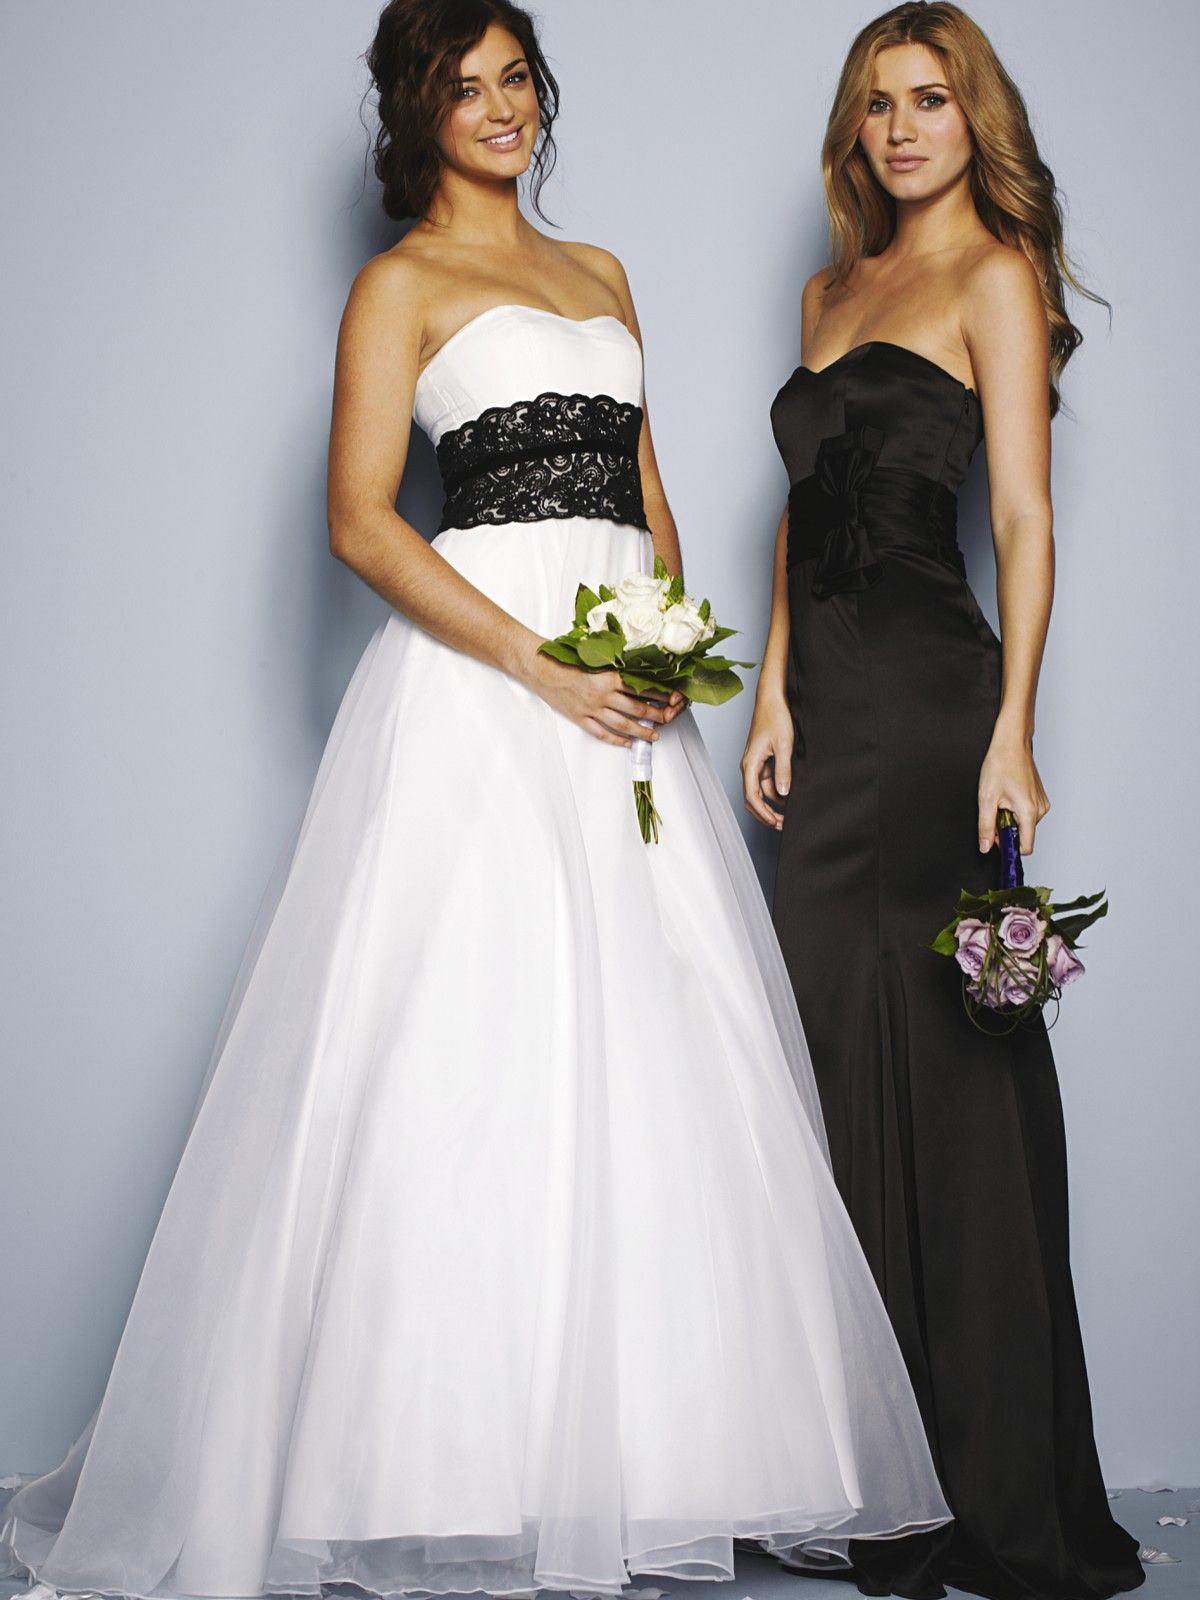 I like the contrast of black and white wedding dress with black i like the contrast of black and white wedding dress with black bridesmaid dress from very ombrellifo Image collections